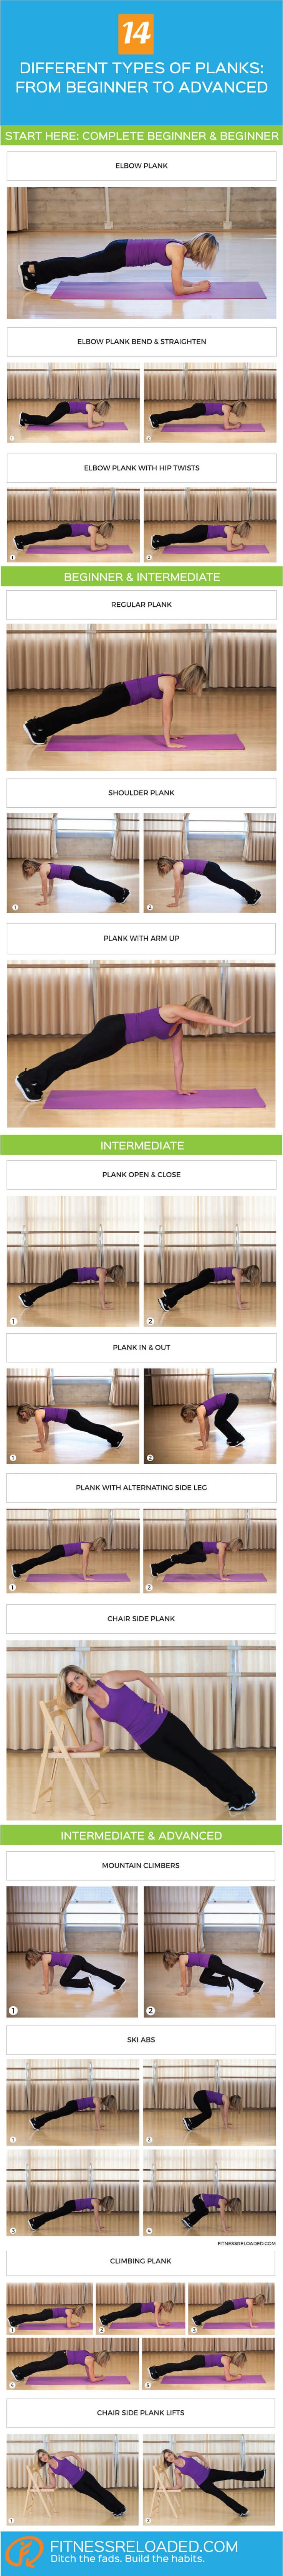 14 different types of planks